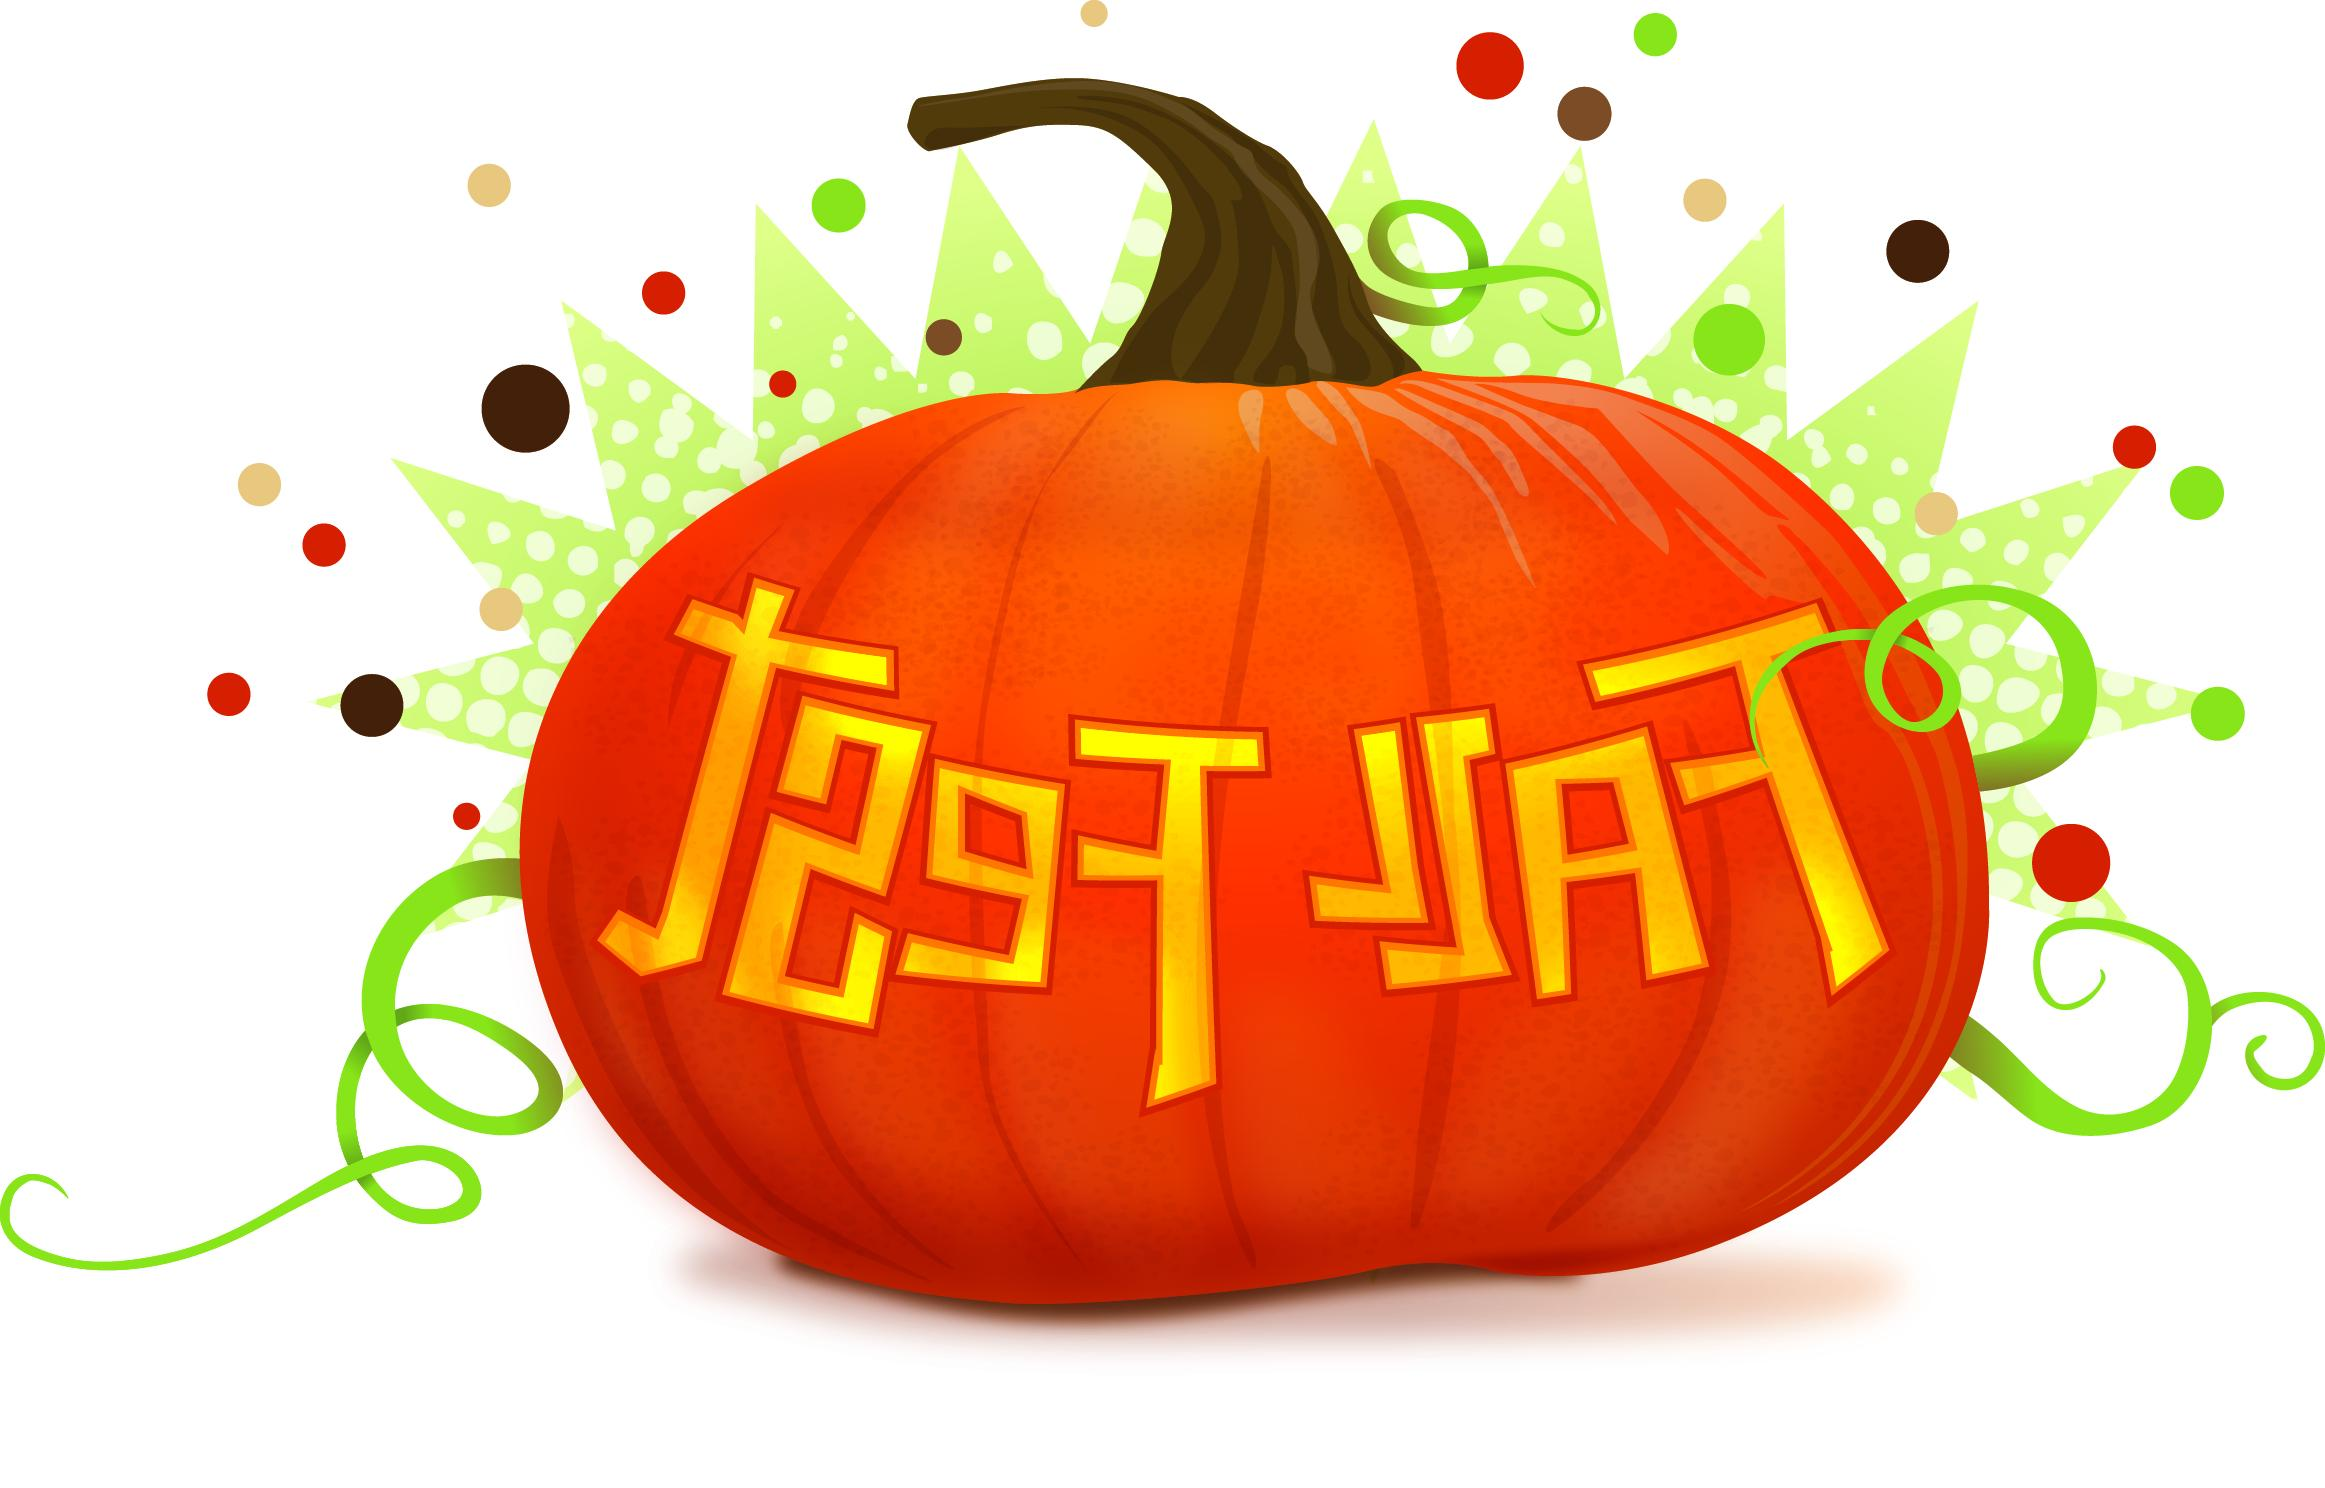 Fall festival clipart images